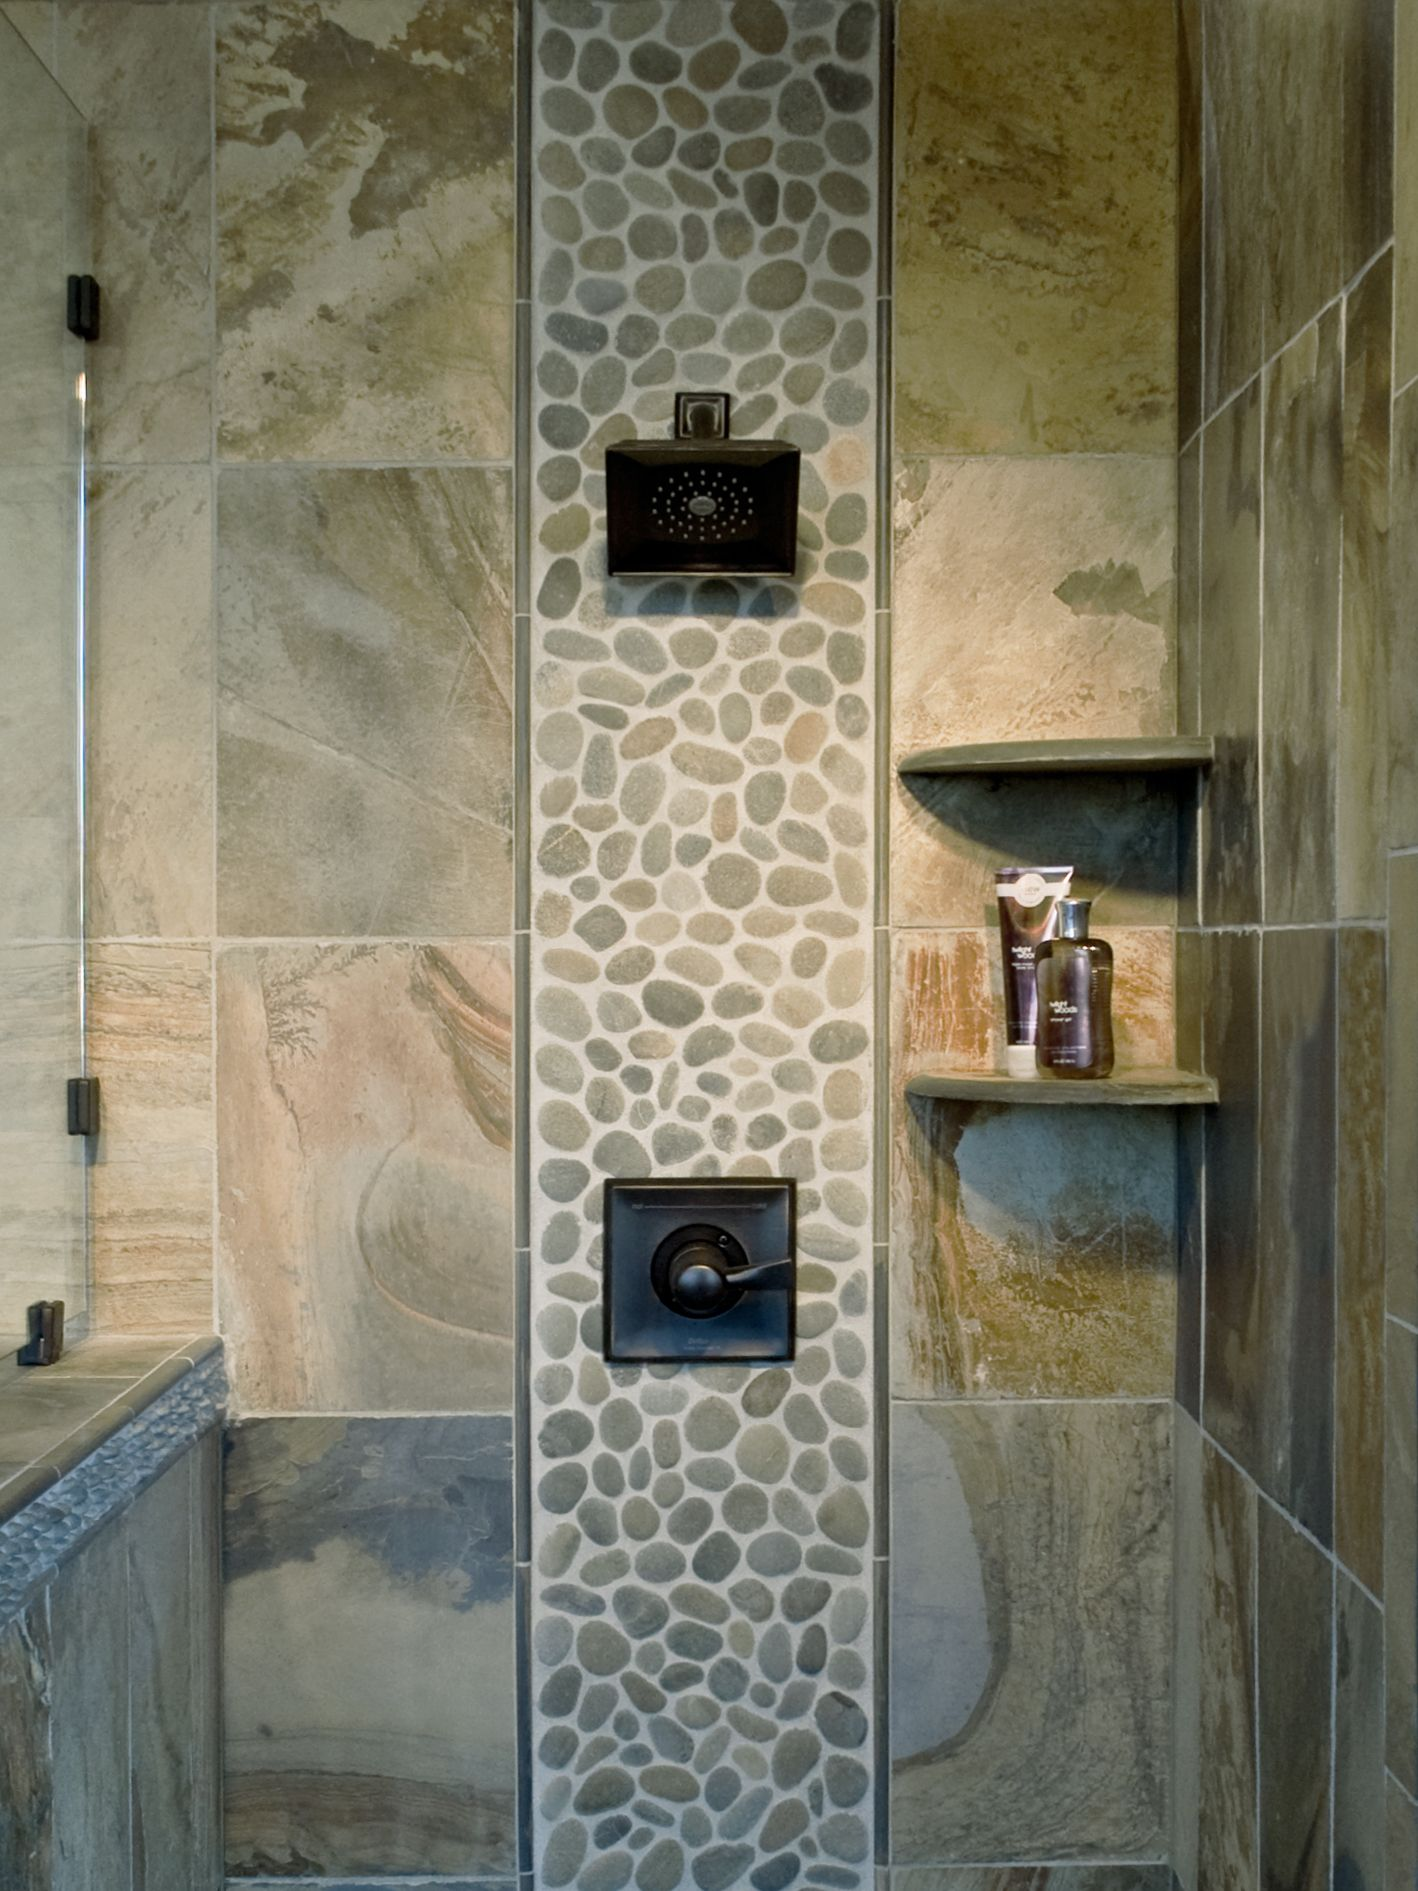 Pebble mosaic tile in the shower. The tile